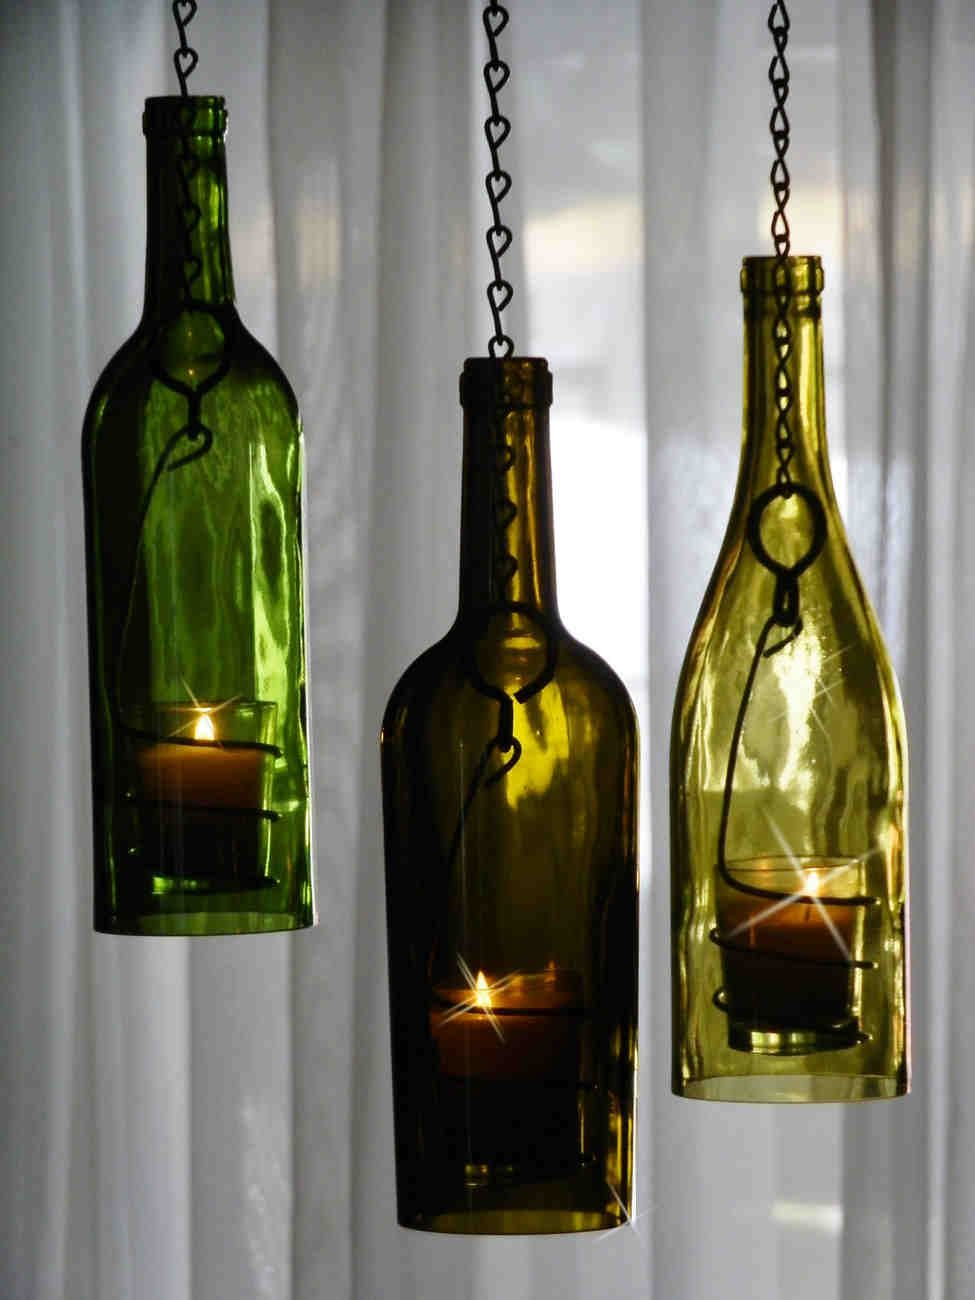 Diy wine bottle candle holders pretty cool diy for Champagne bottle candle holders